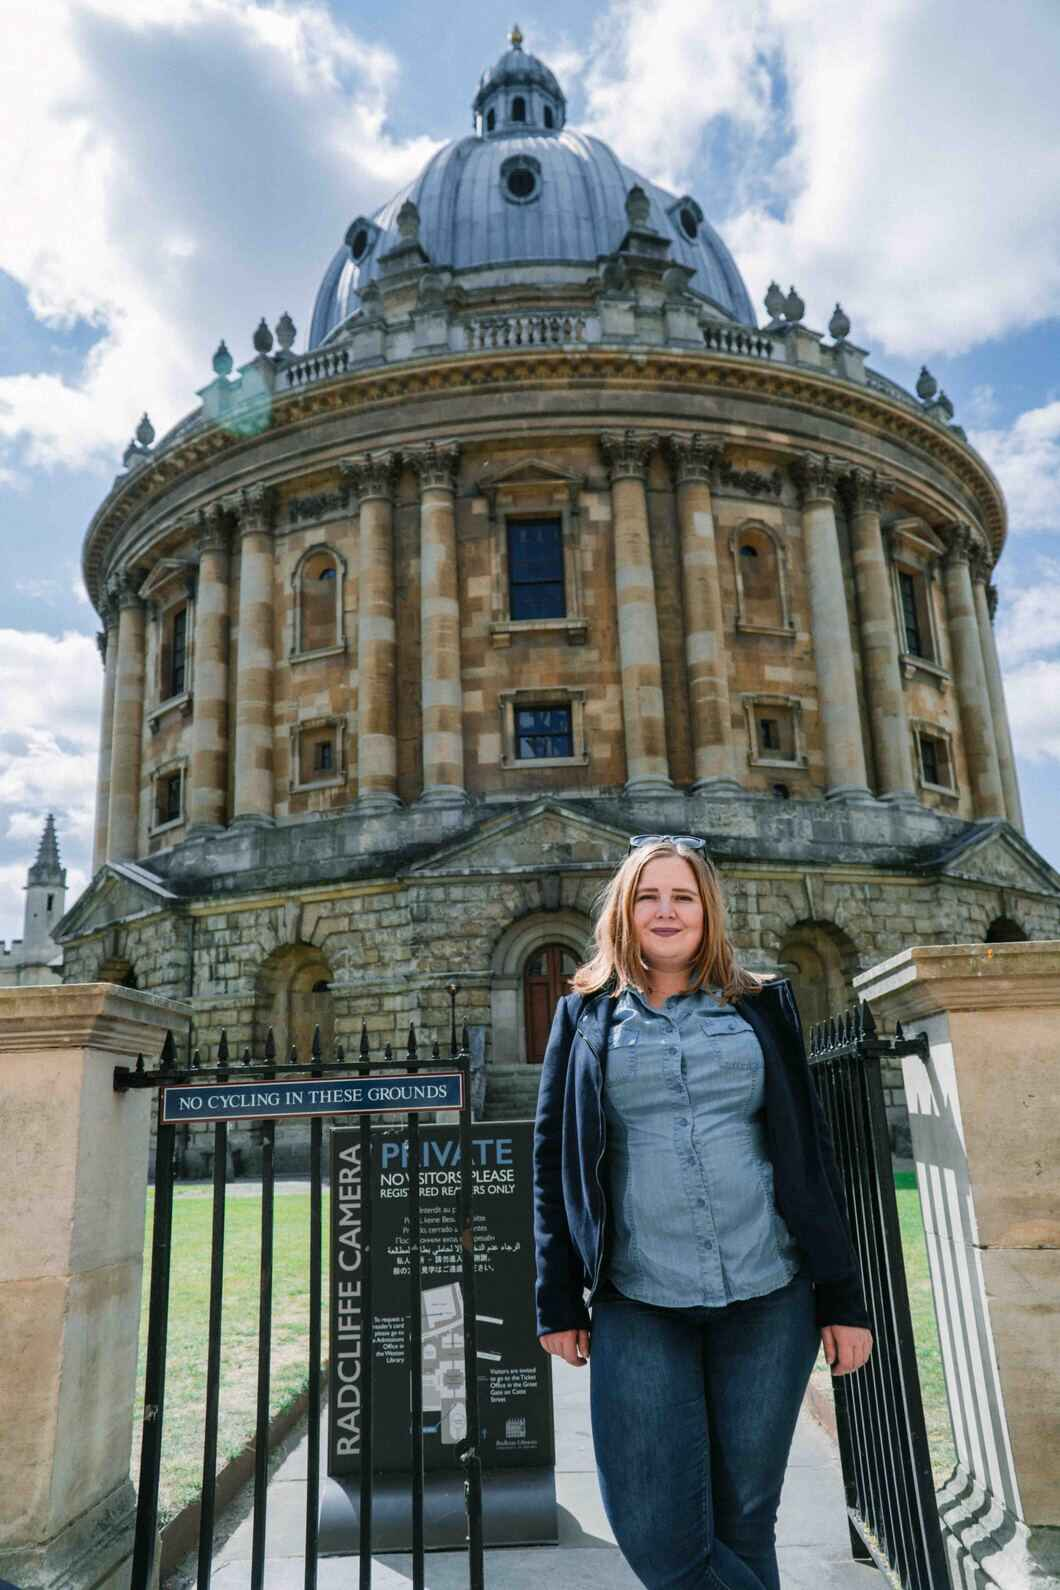 Explore the beautiful buildings in Oxford and discover Harry Potter filming locations.